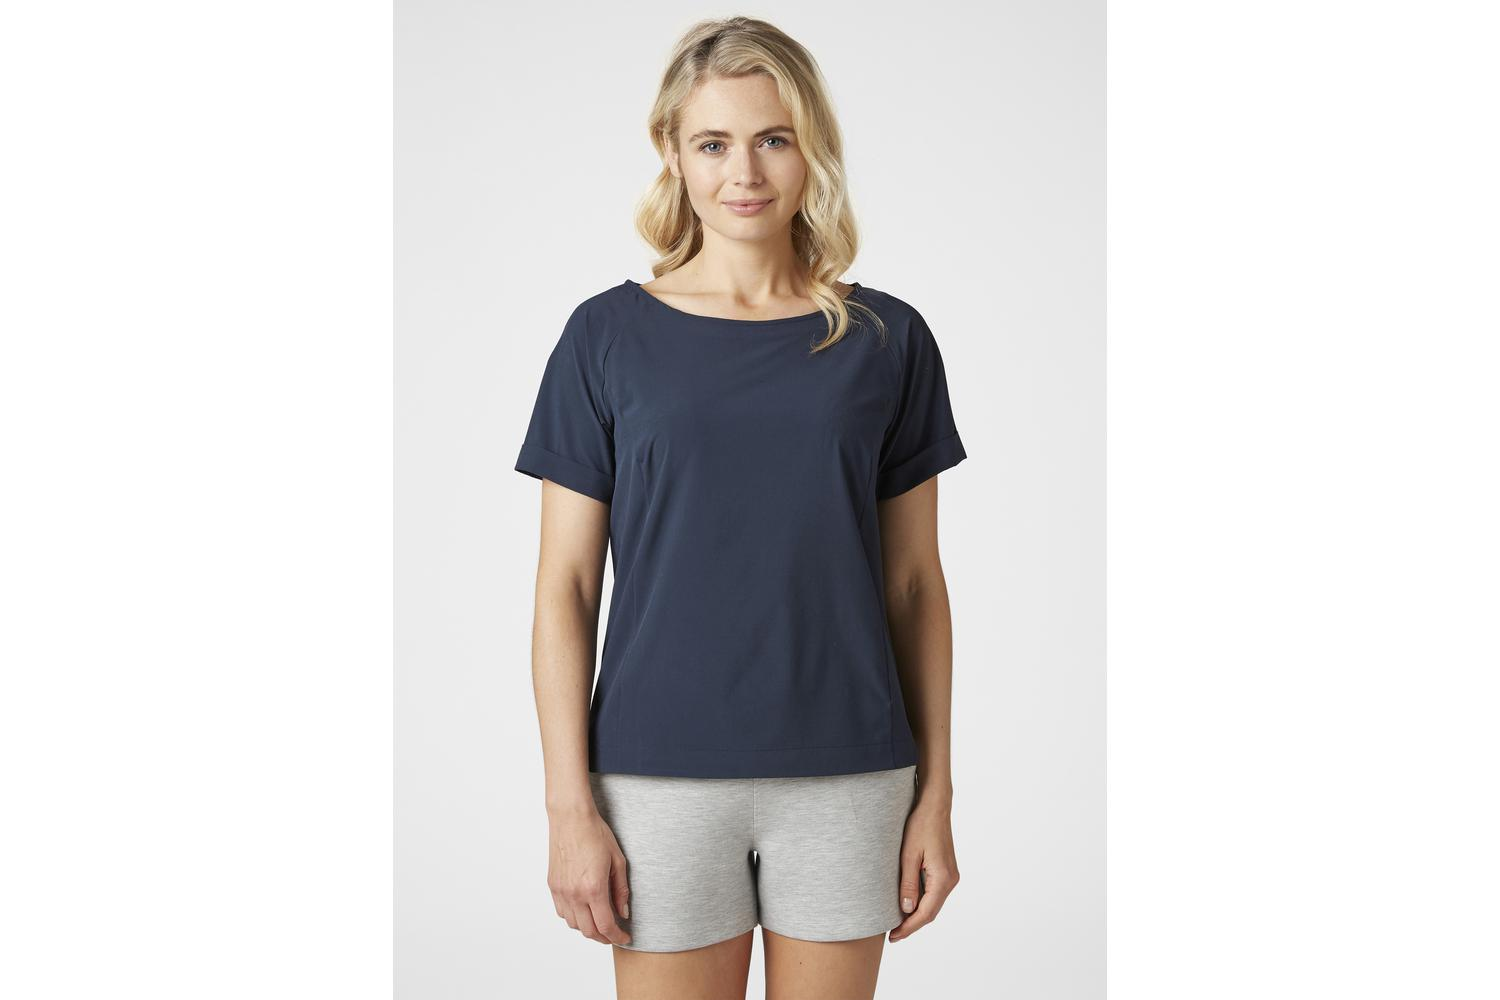 Helly Hansen dames thalia t-shirt navy S